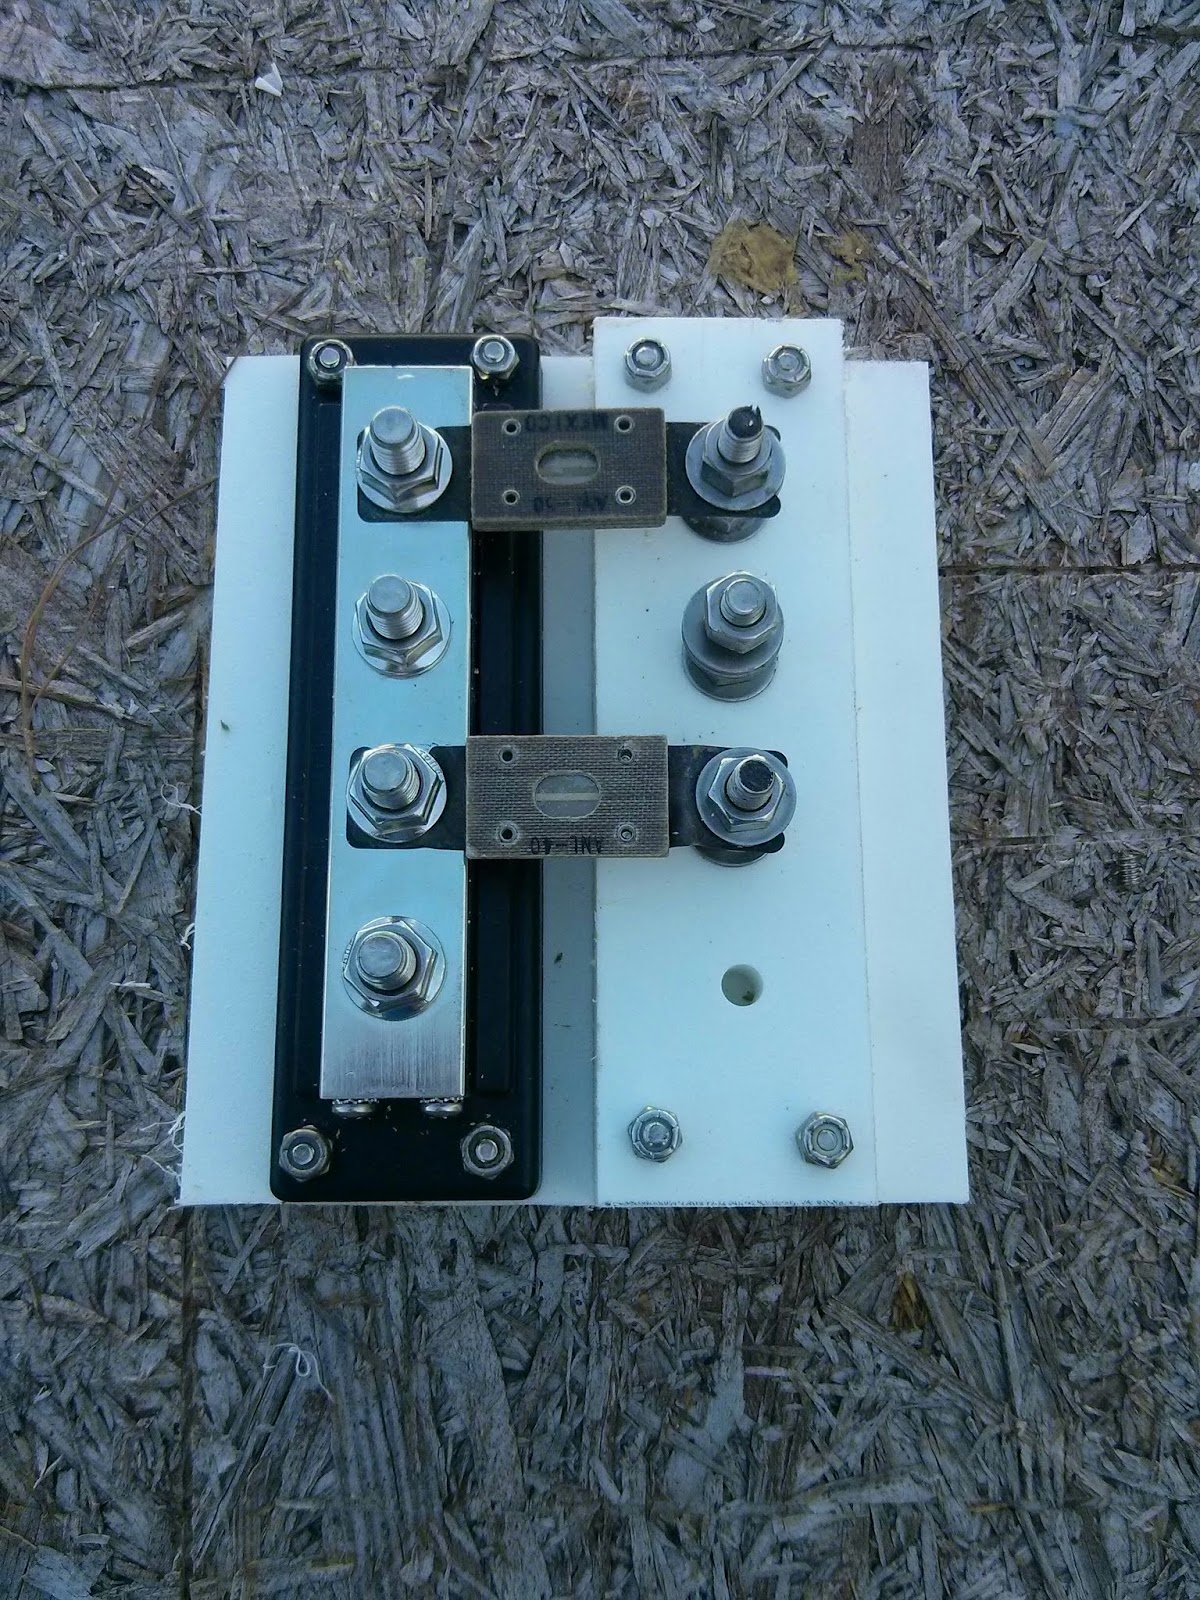 Sv Pilgrim 2015 In 220 Screw Fuse Box Completed Block Sans The Wires And One